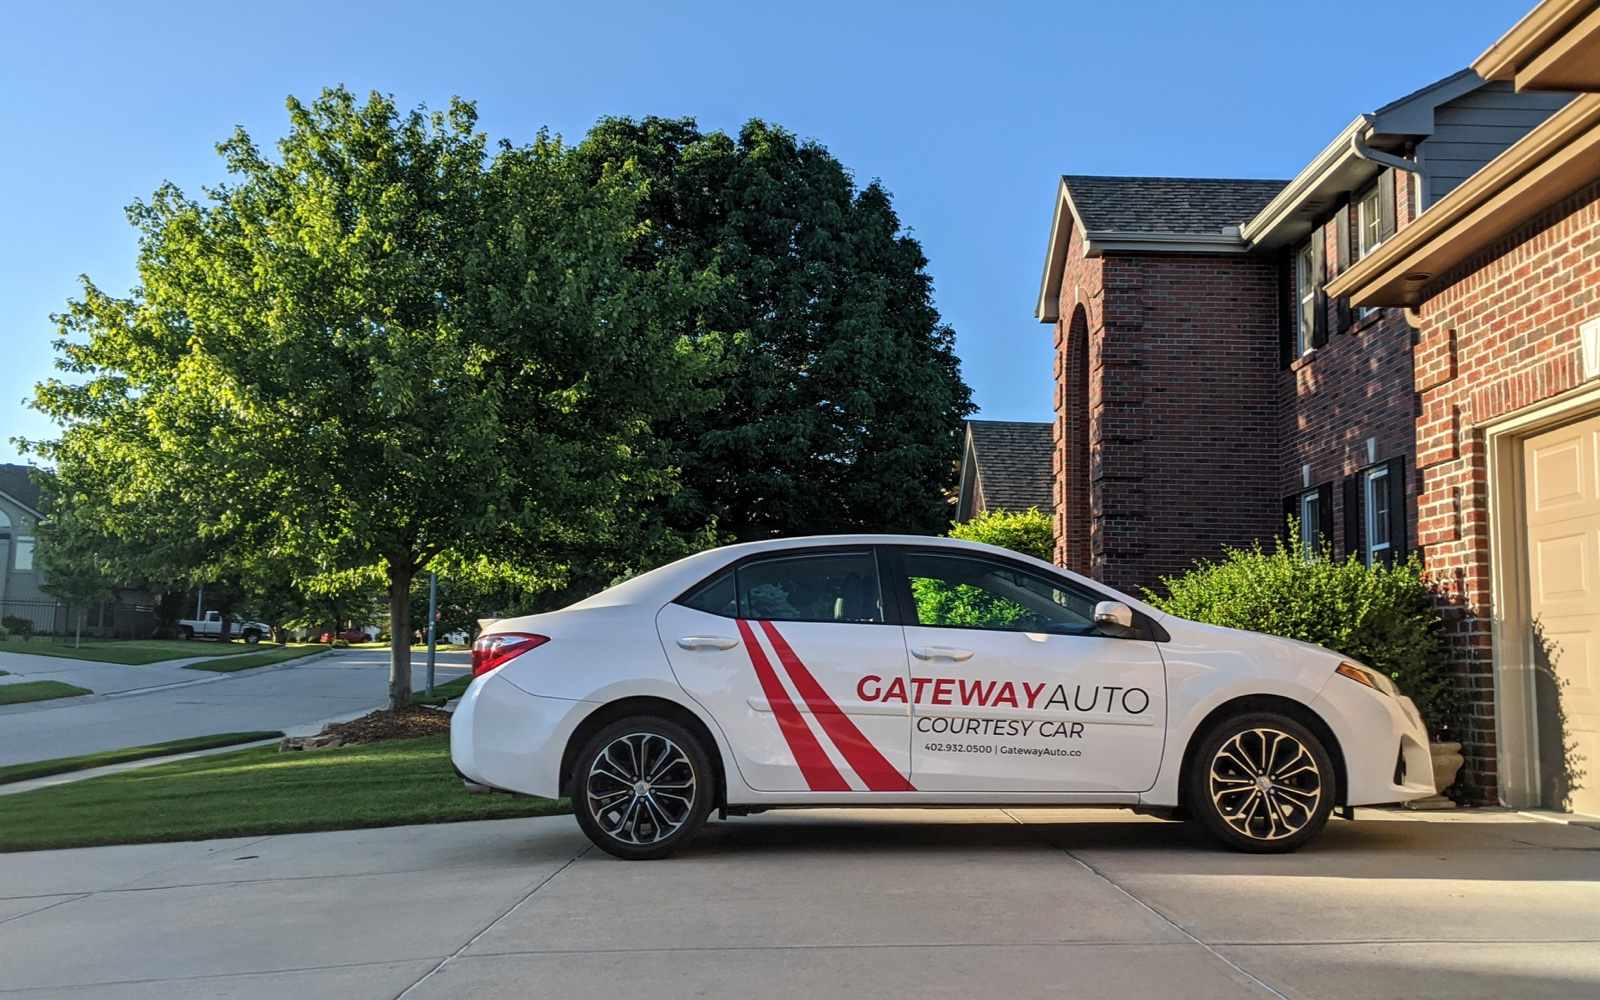 A photo of Gateway Auto's courtesy cars